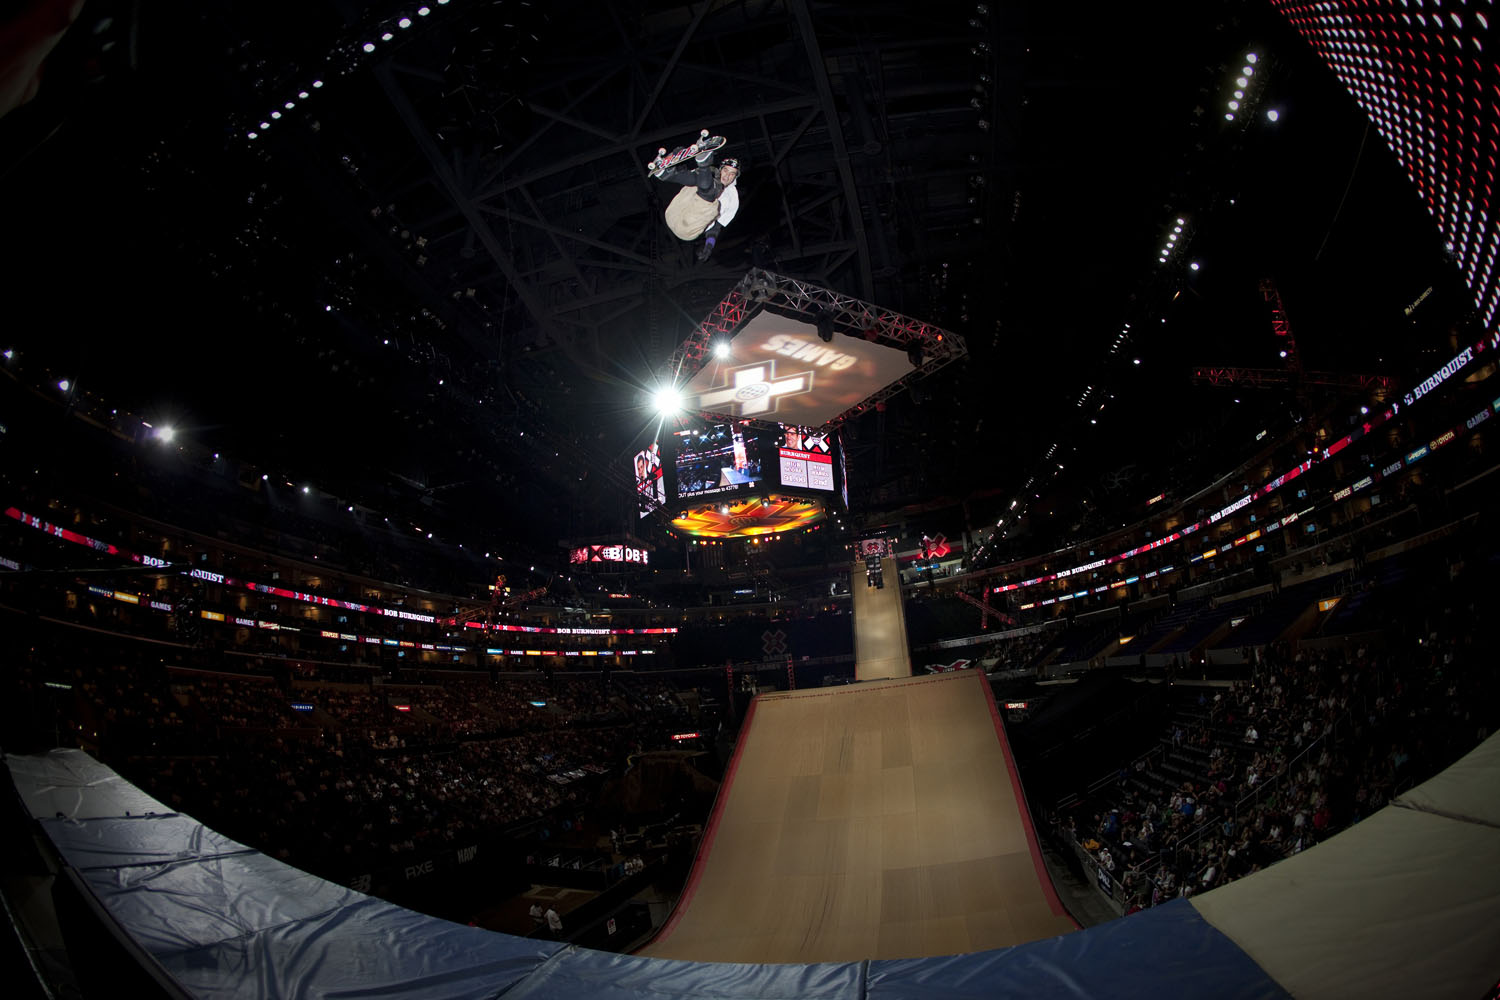 Bob Burnquist competes in Skateboard Big Air at the Staples Center on July 30, 2009 in Los Angeles, California.